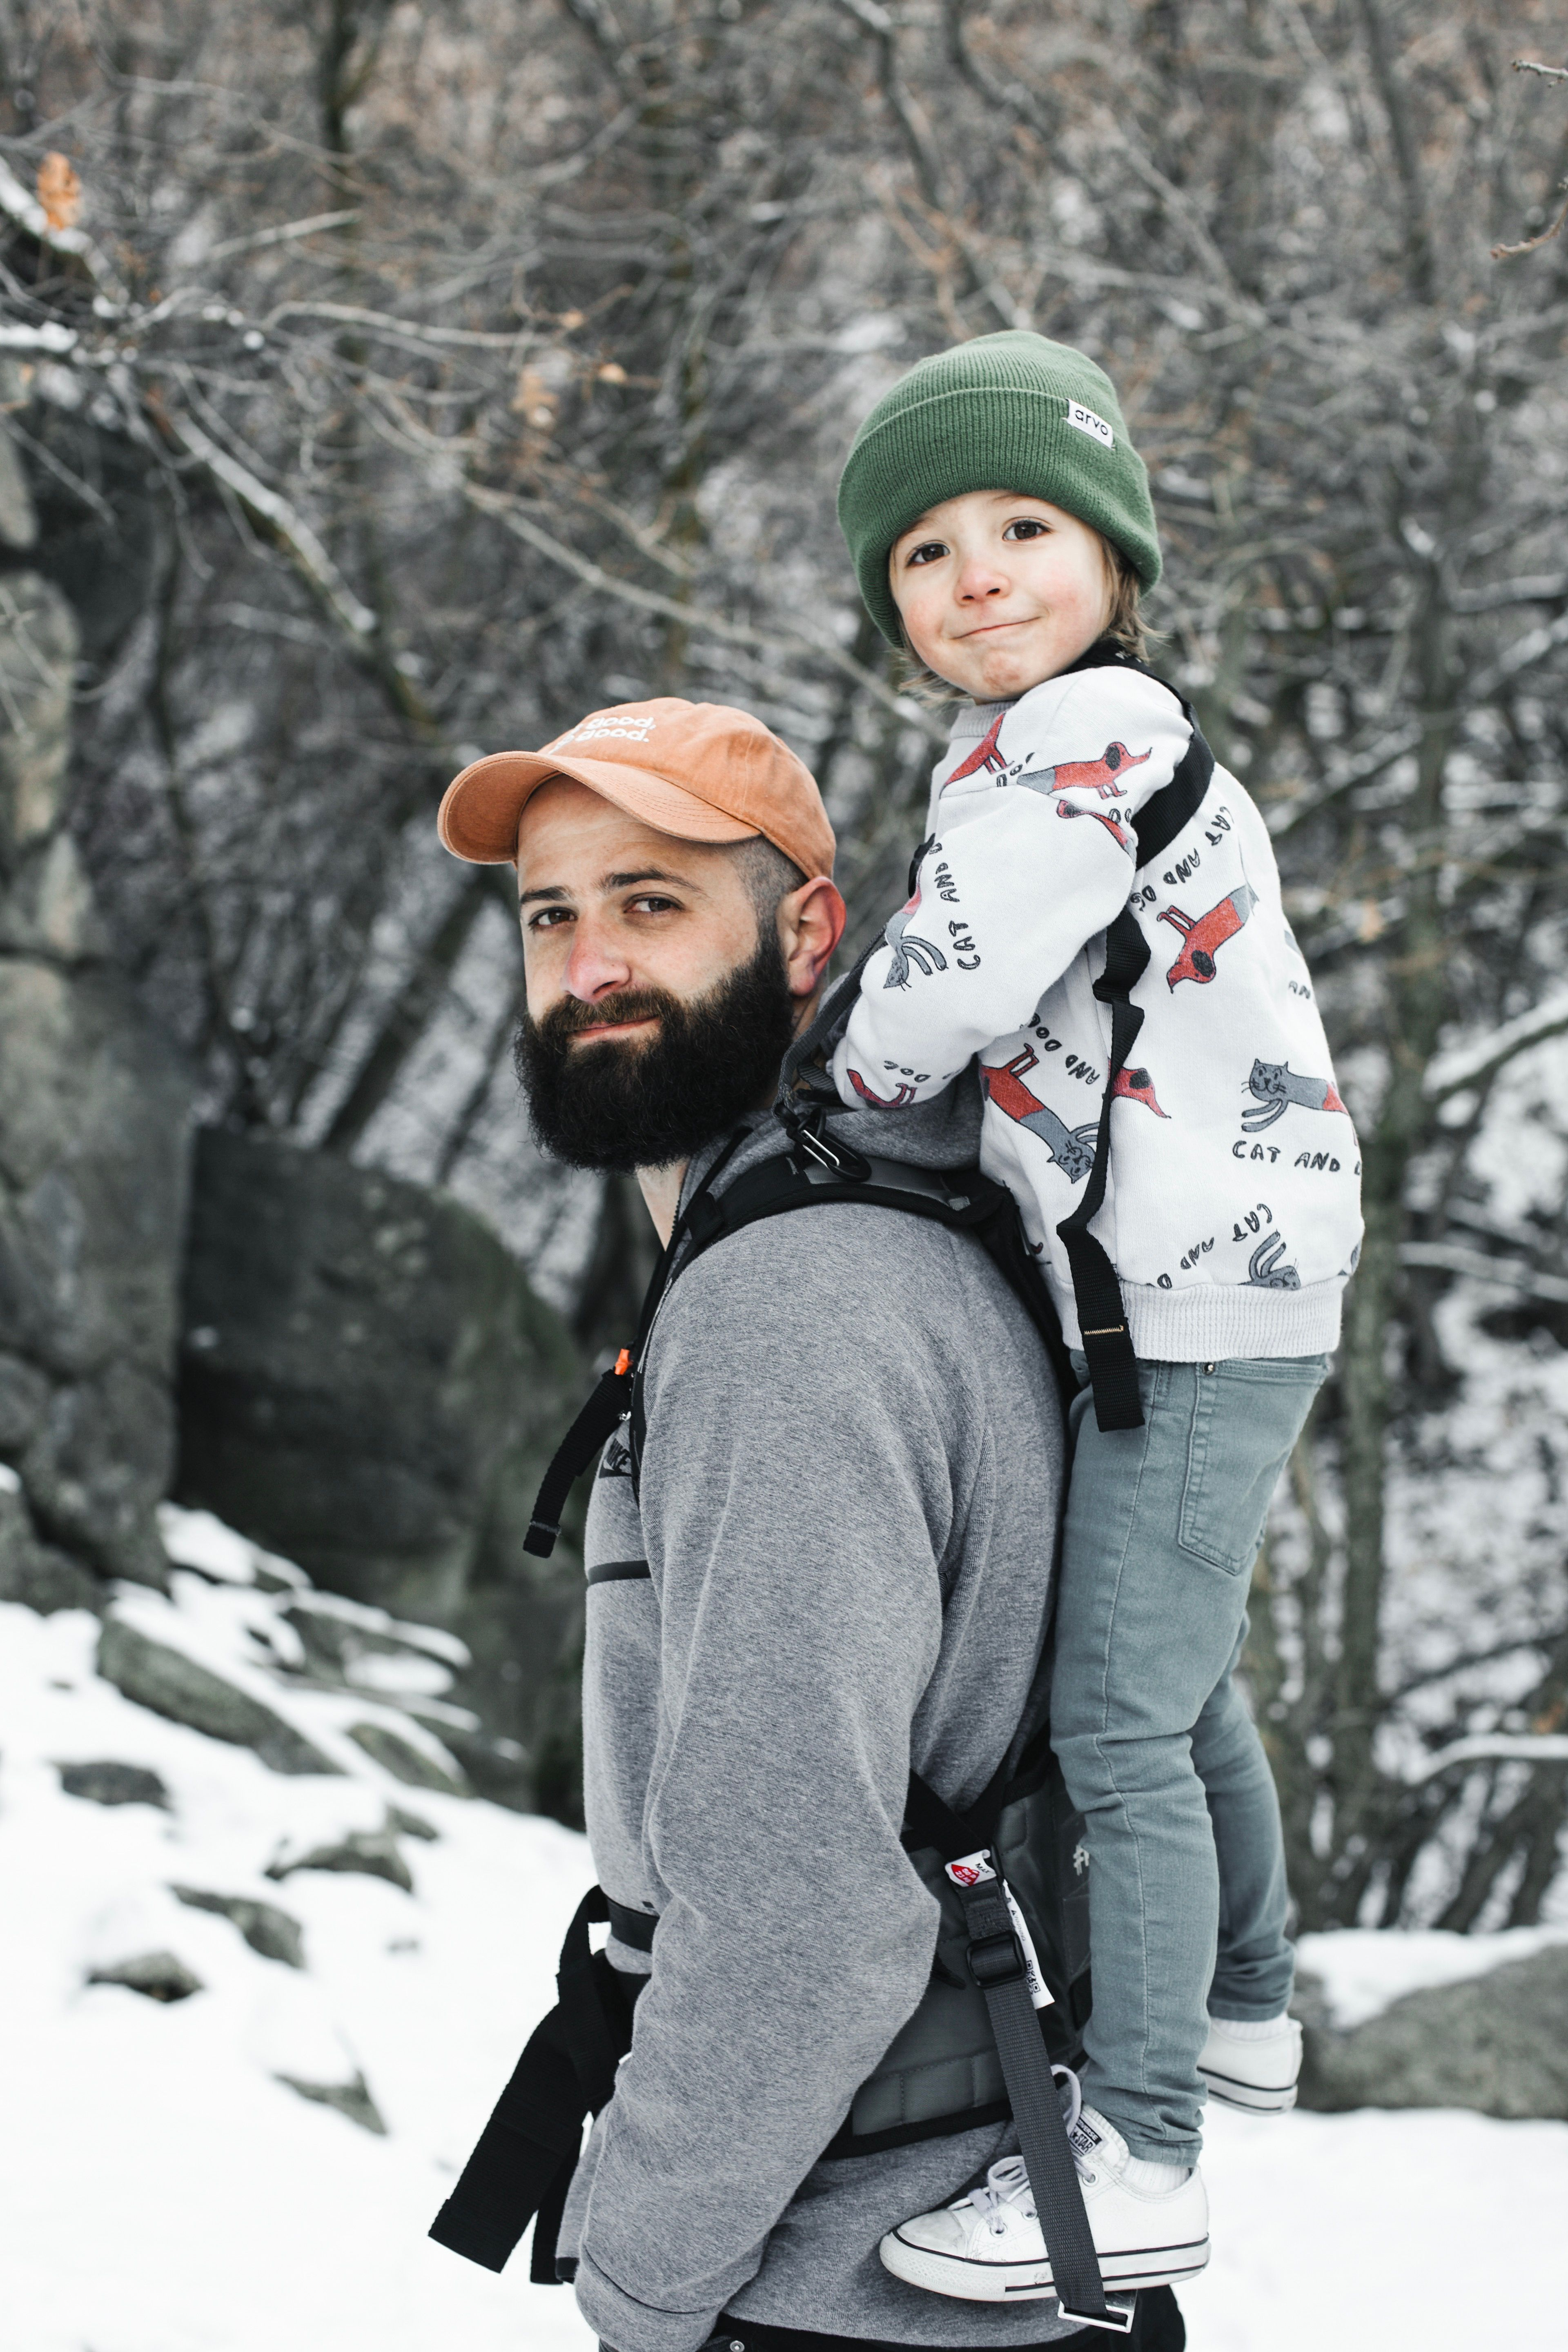 62d38c1a24d Hiking in the winter with your toddler just got easy with the Piggyback  Rider